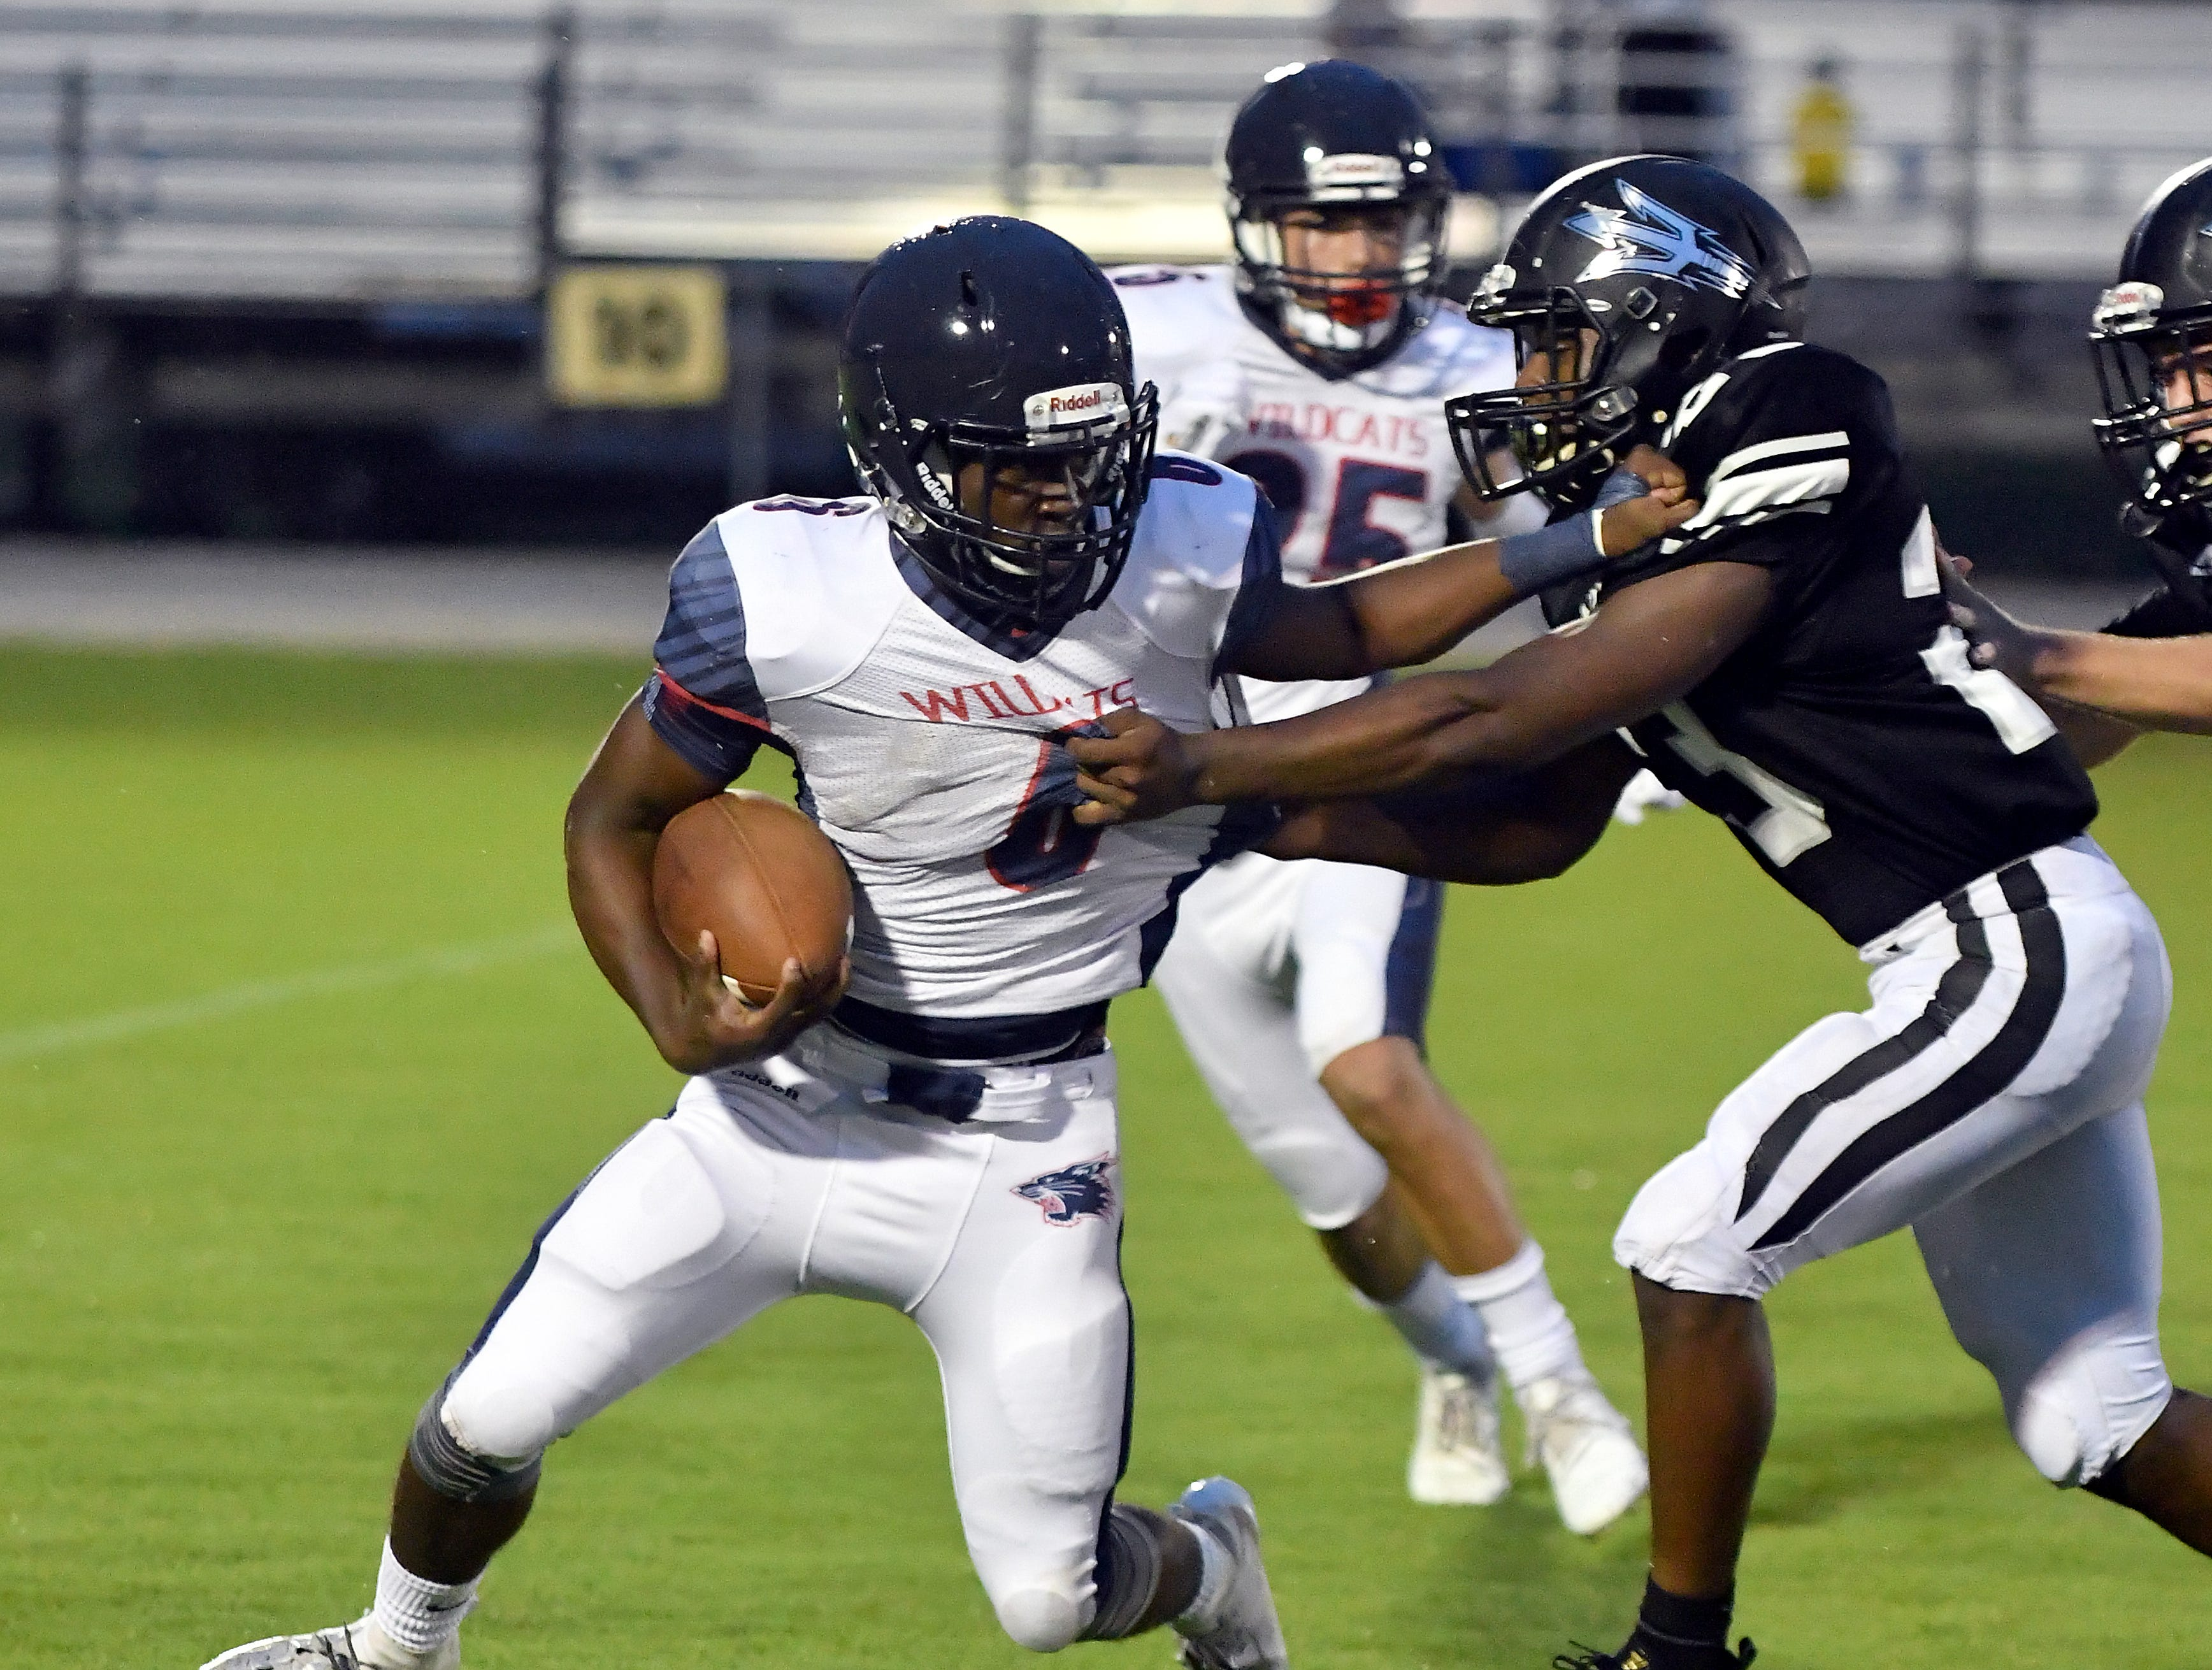 Estero High School running back Derrick Peart (6) tries block a Mariner High School defender during their game in Cape Coral Monday, Aug. 27, 2018.